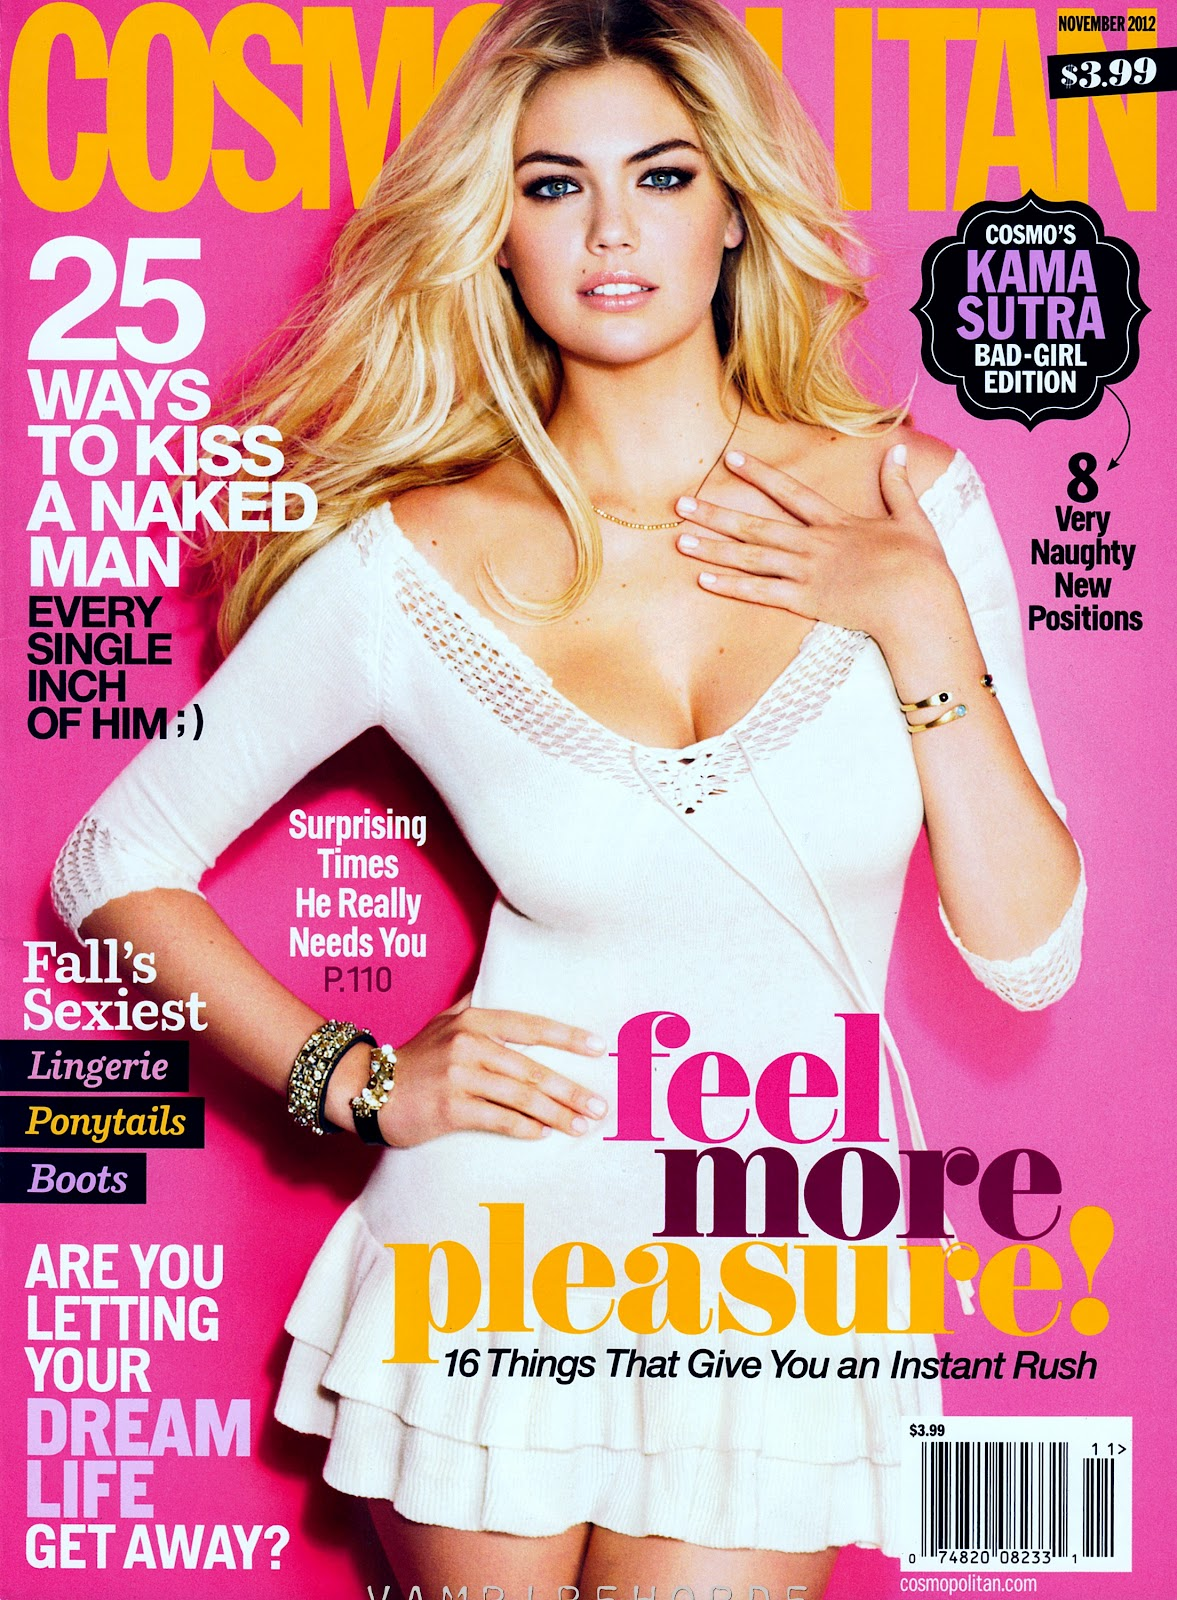 http://1.bp.blogspot.com/-xyC2L-T12uI/UG03owZsNRI/AAAAAAAAlsk/MMmvU40Qvrc/s1600/fashion_scans_remastered-kate_upton-cosmopolitan_usa-november_2012-scanned_by_vampirehorde-hq-1.jpg